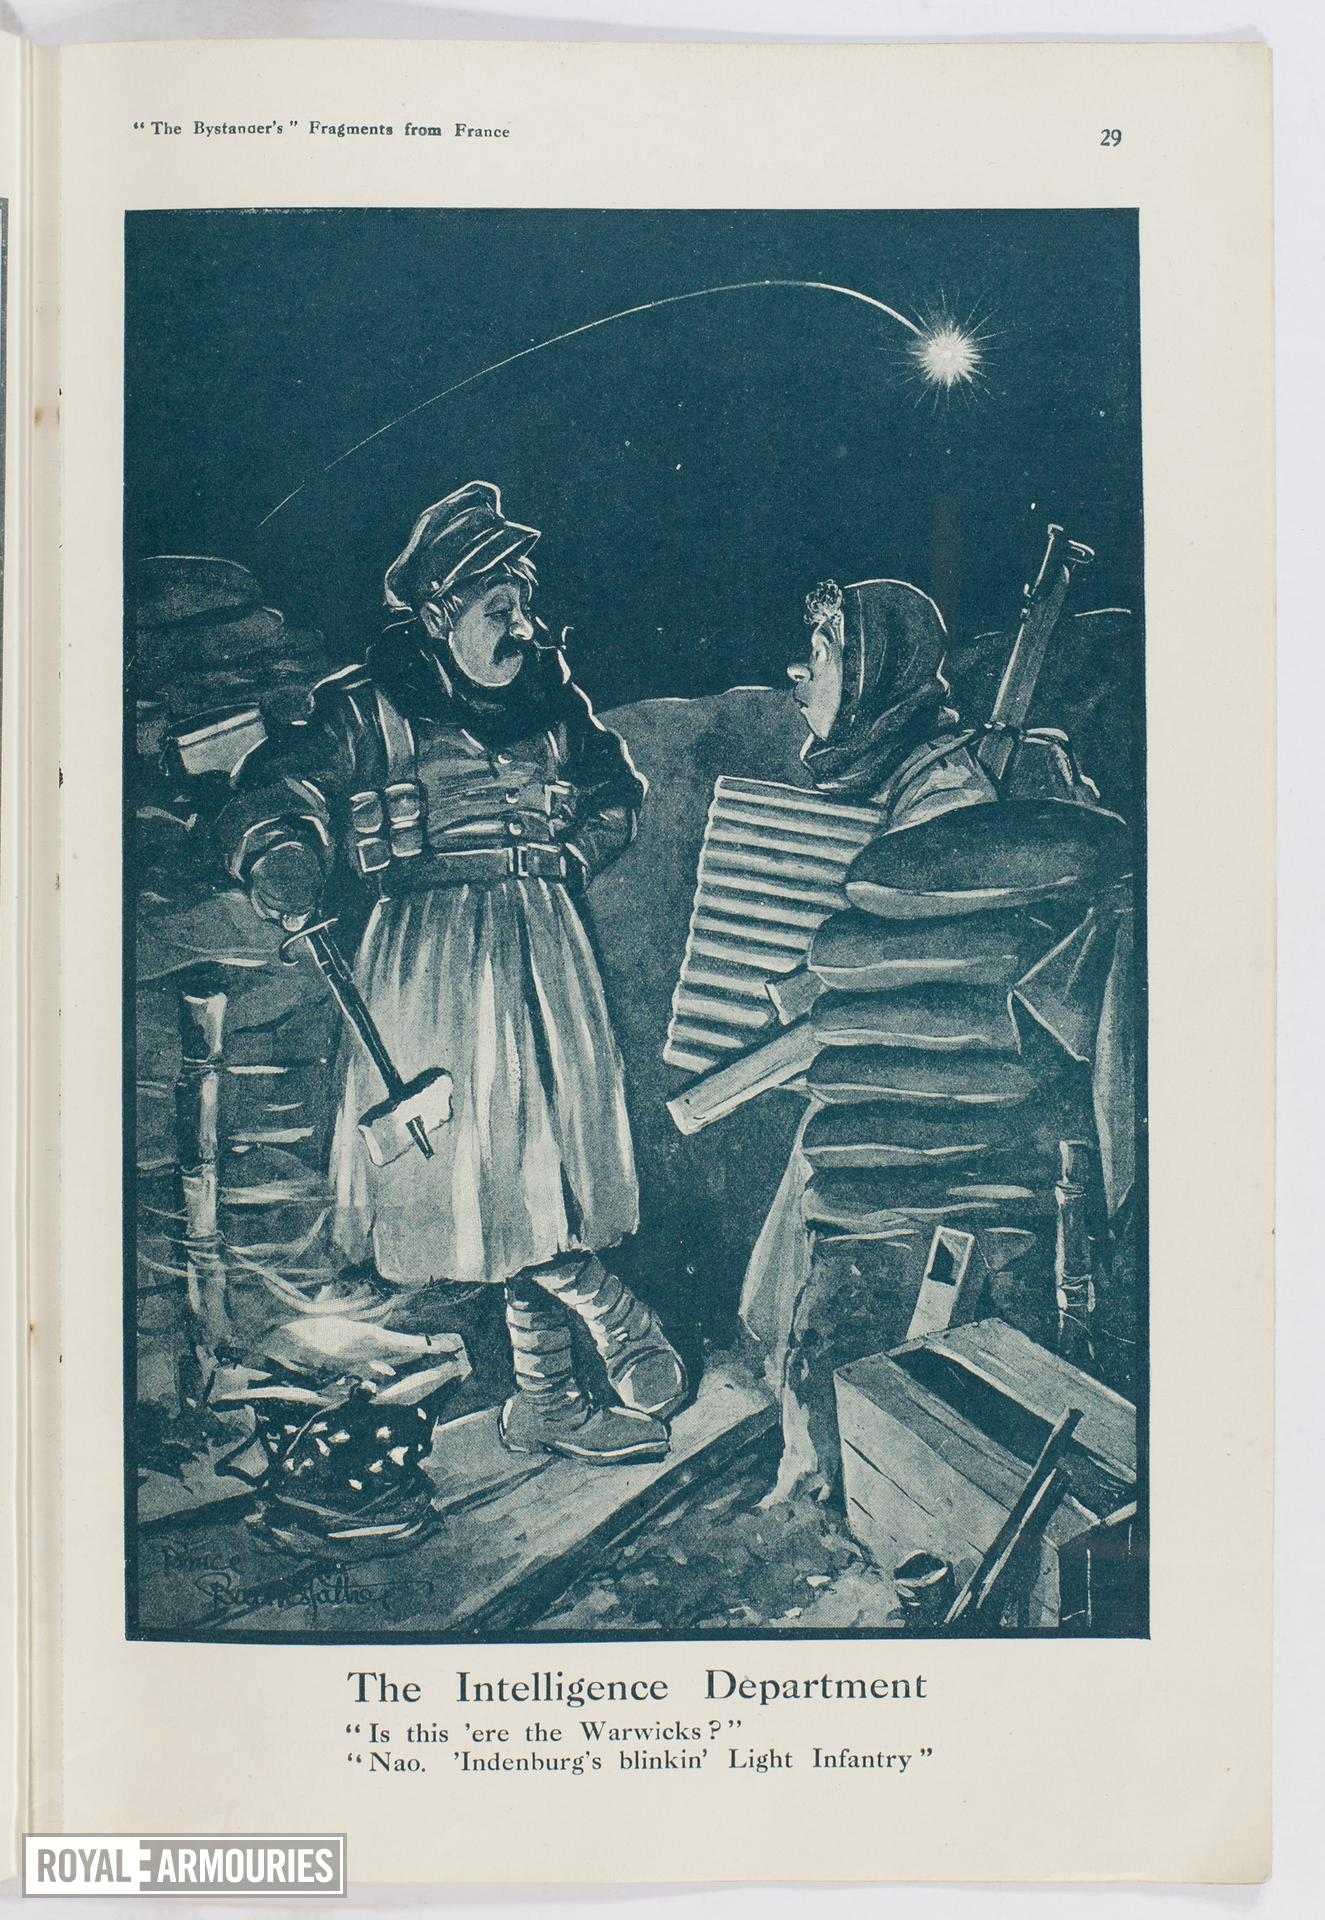 """Plate entitled , 'The Intelligence Department. """"Is this 'ere the Warlicks?"""" """"Nao. 'Indenburg's blinkin' Light Infantry"""",' page 29, taken from the title, The Bystander's More Fragments from France, tenth edition by Captain Bruce Bairnsfather."""